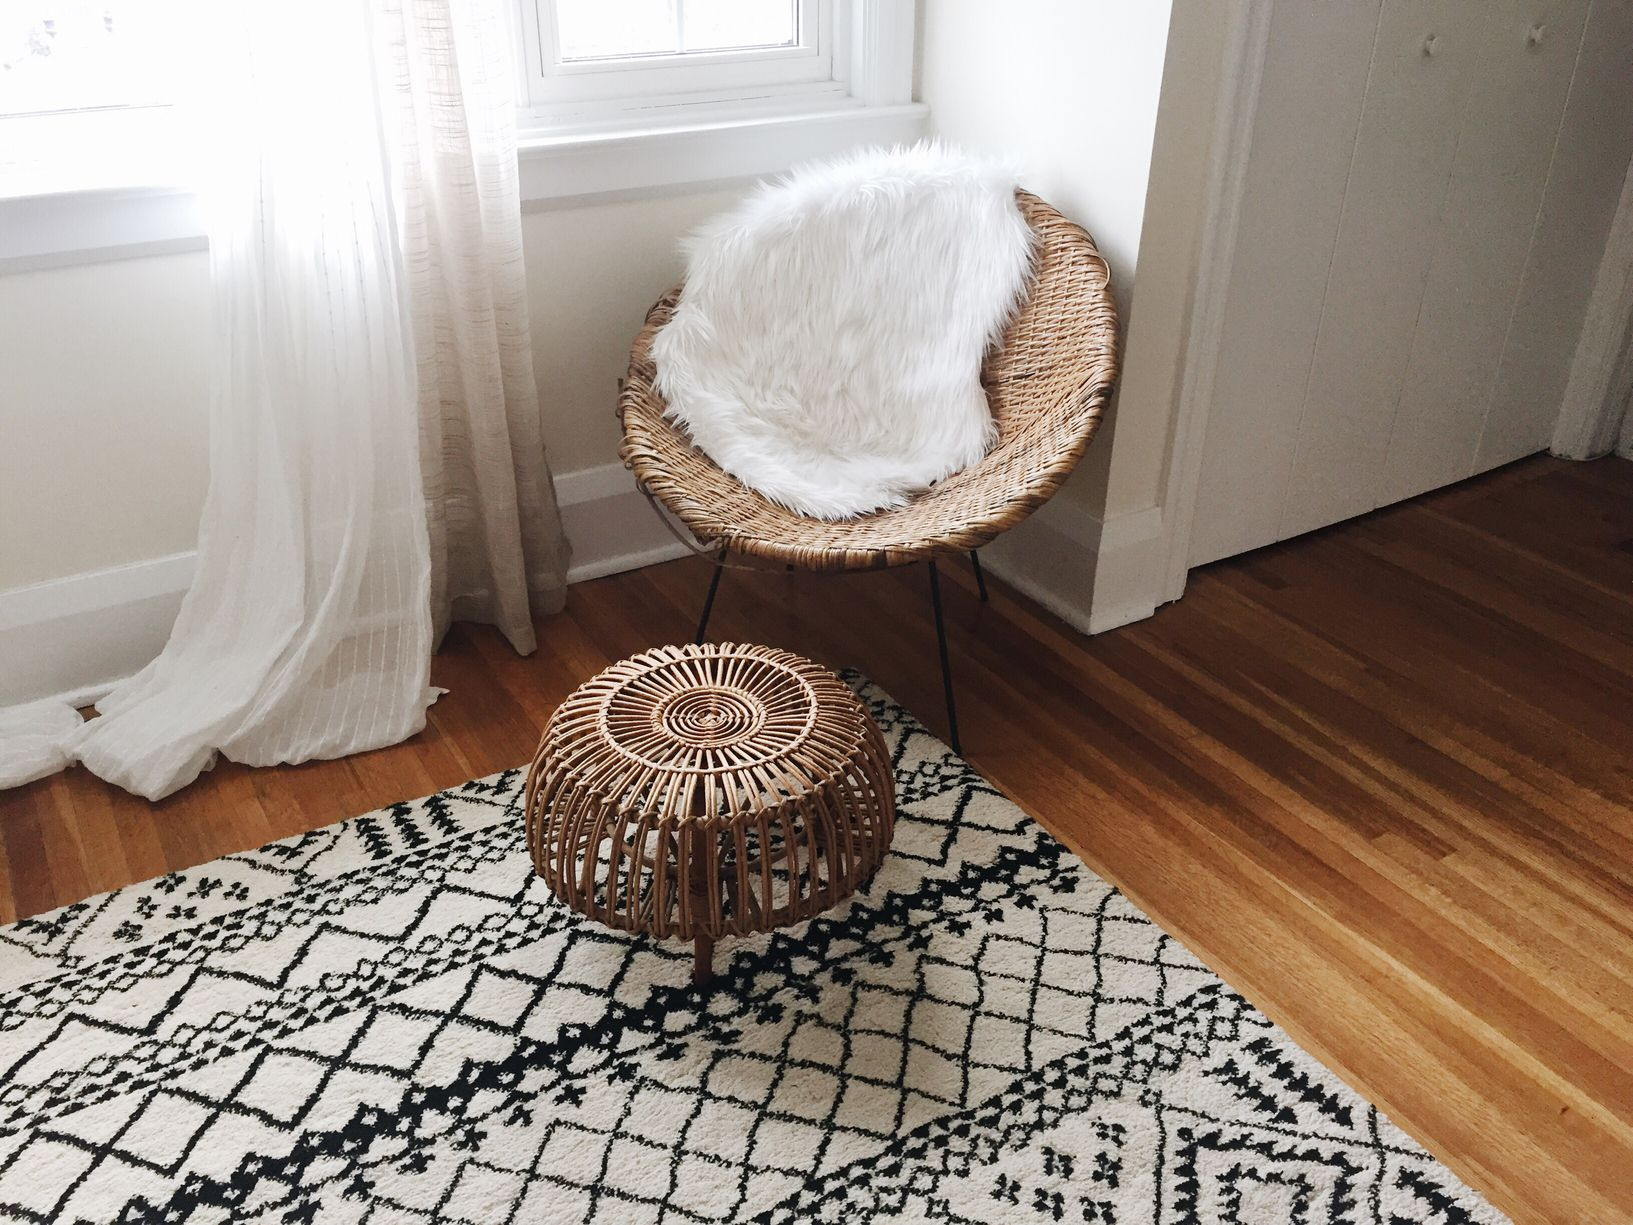 hardwood floor specialists redondo beach of choose the right size area rug for under your king bed inside stocksy txpaf693fccatn100 medium 886868 5a58d292da27150037e5d9bd